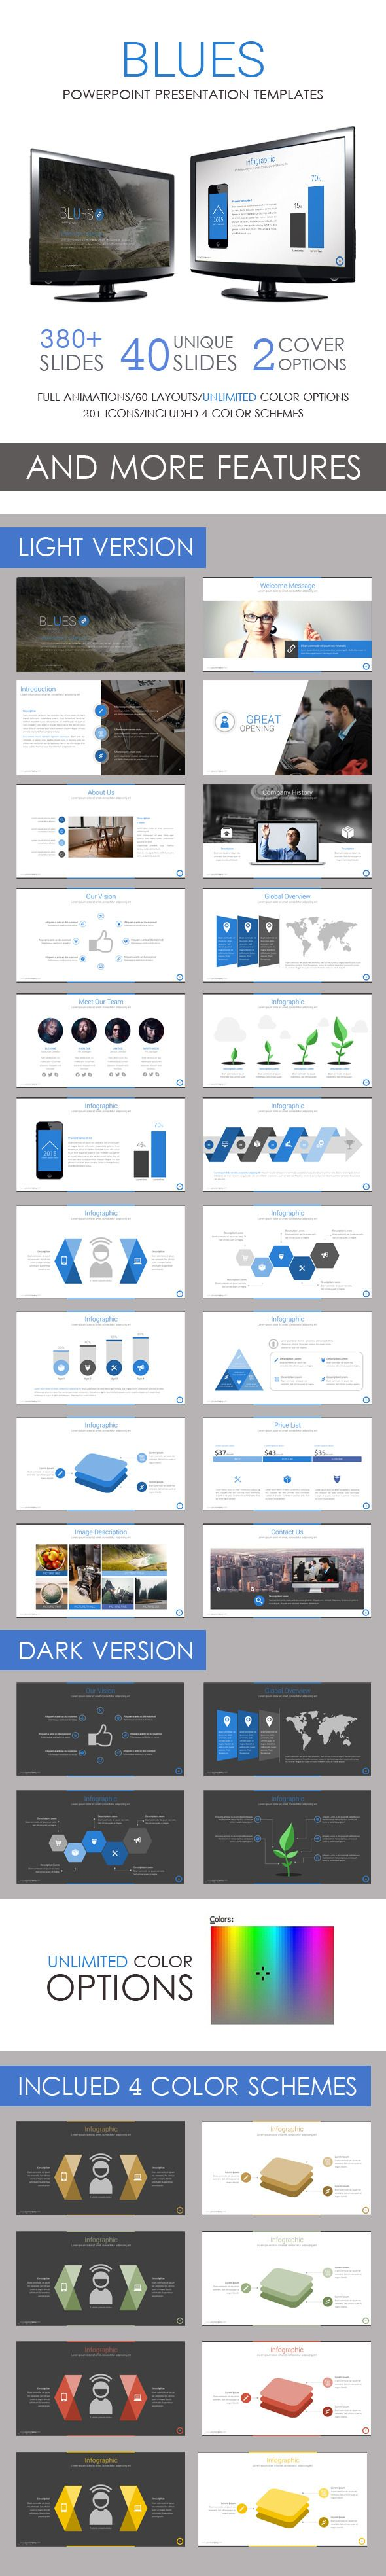 Blues PowerPoint Template - Business PowerPoint Templates